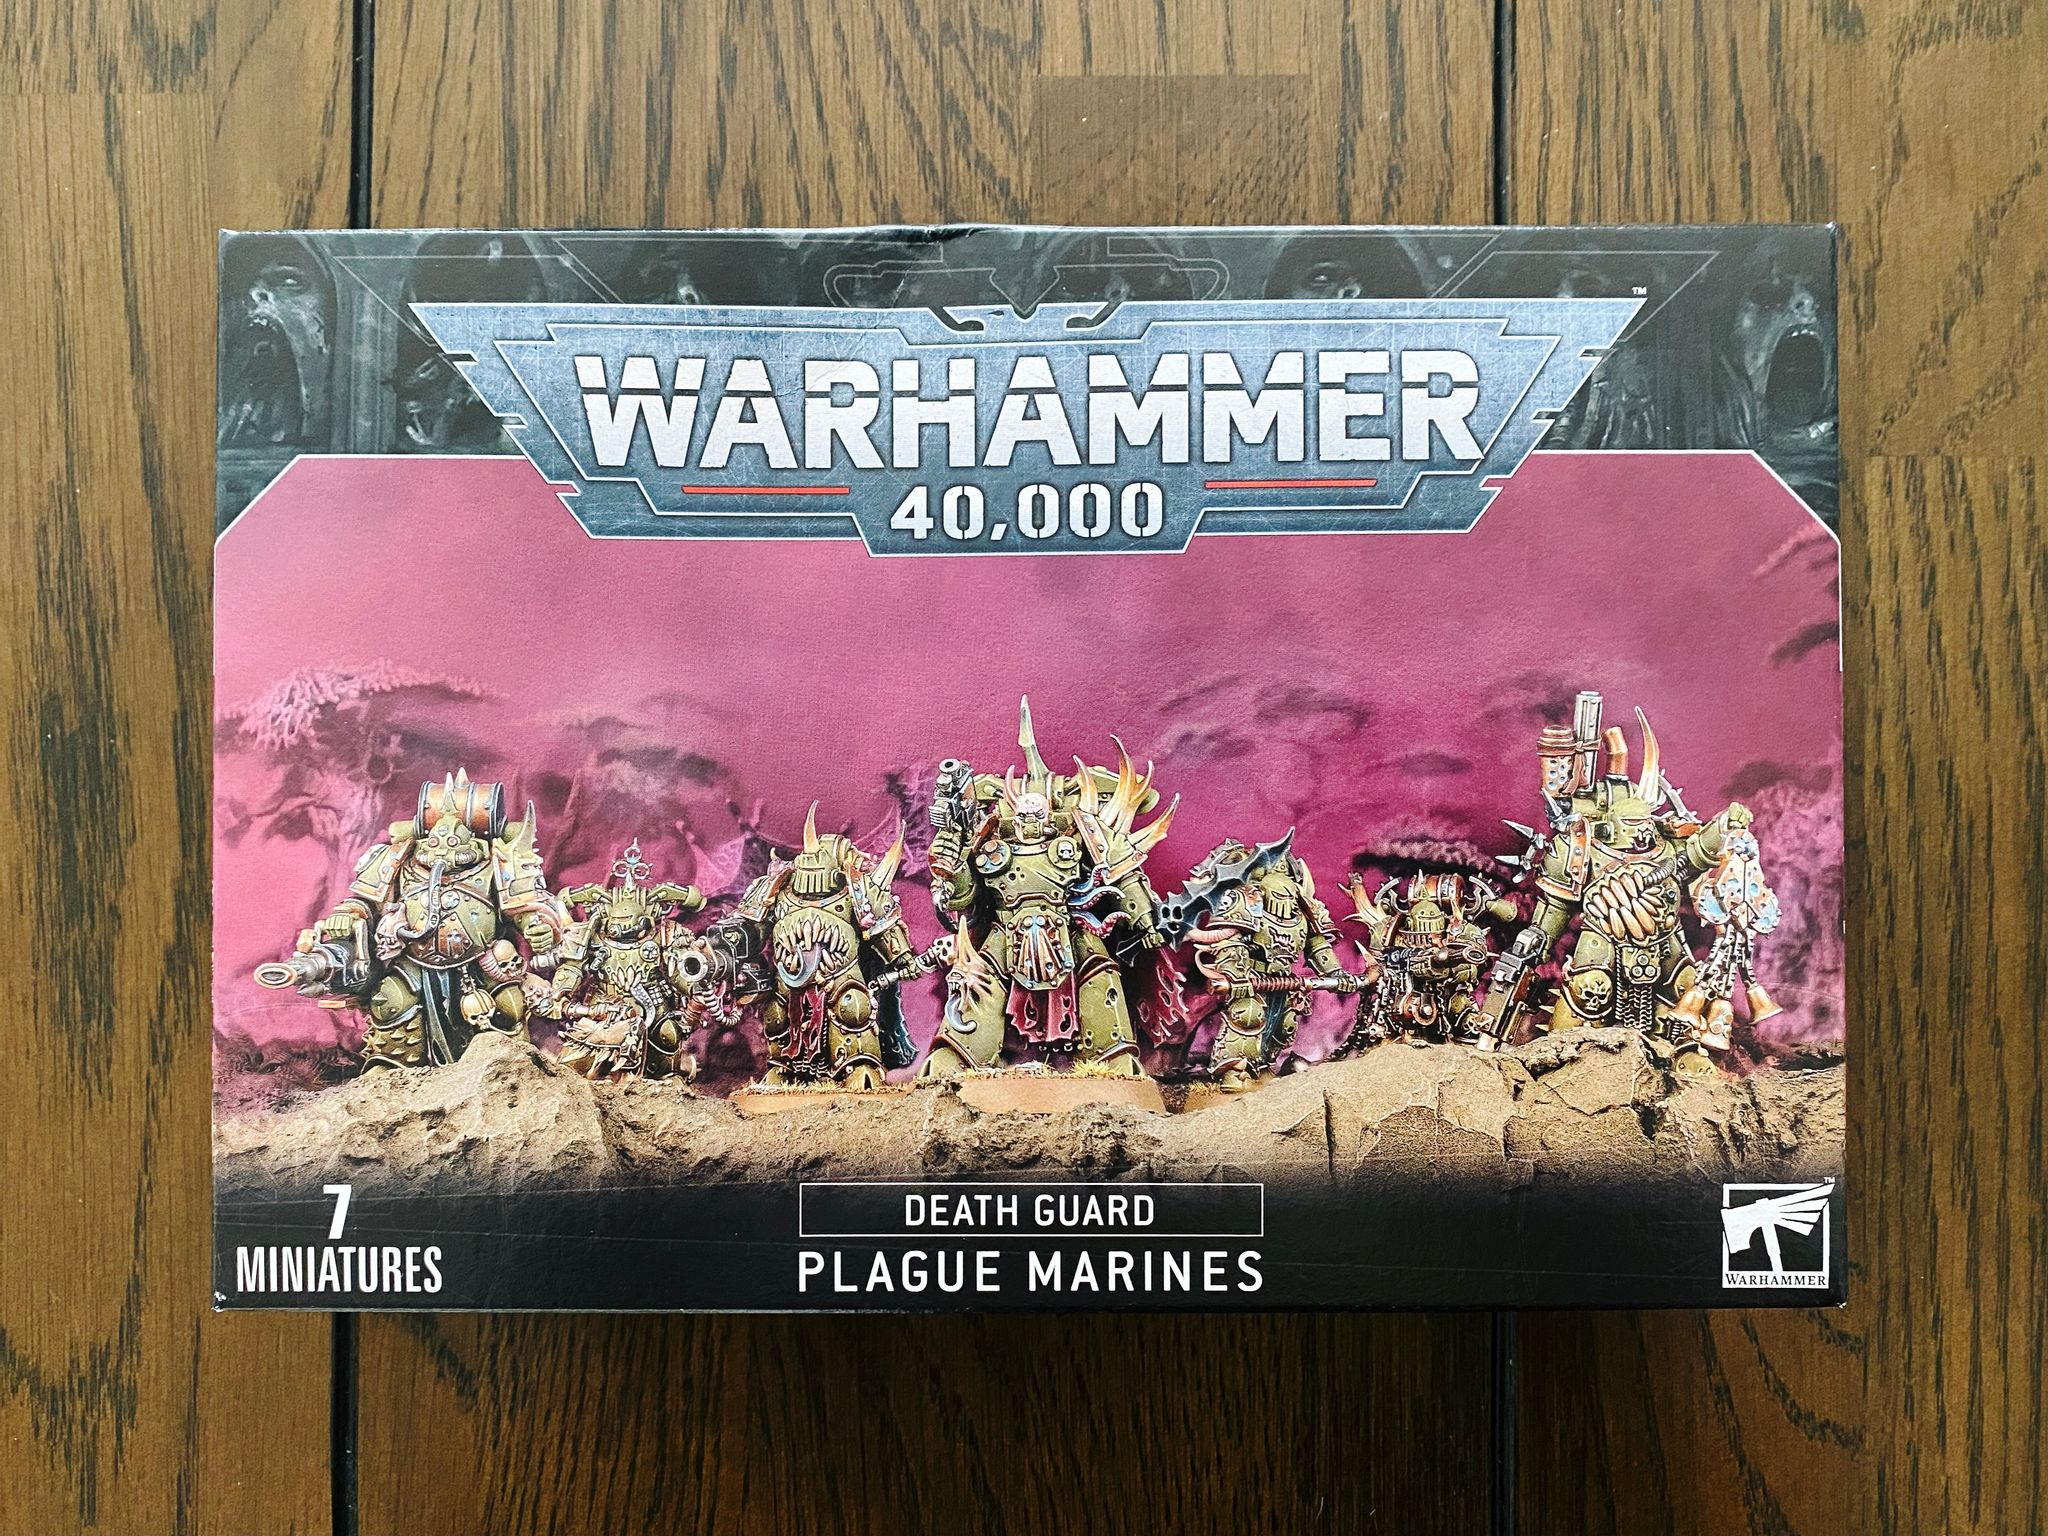 A photo of the box set of seven Plague Marines from Warhammer 40,000. They're all big and heavily armoured with all sorts of tentacles and gross fleshy bits coming out of them.